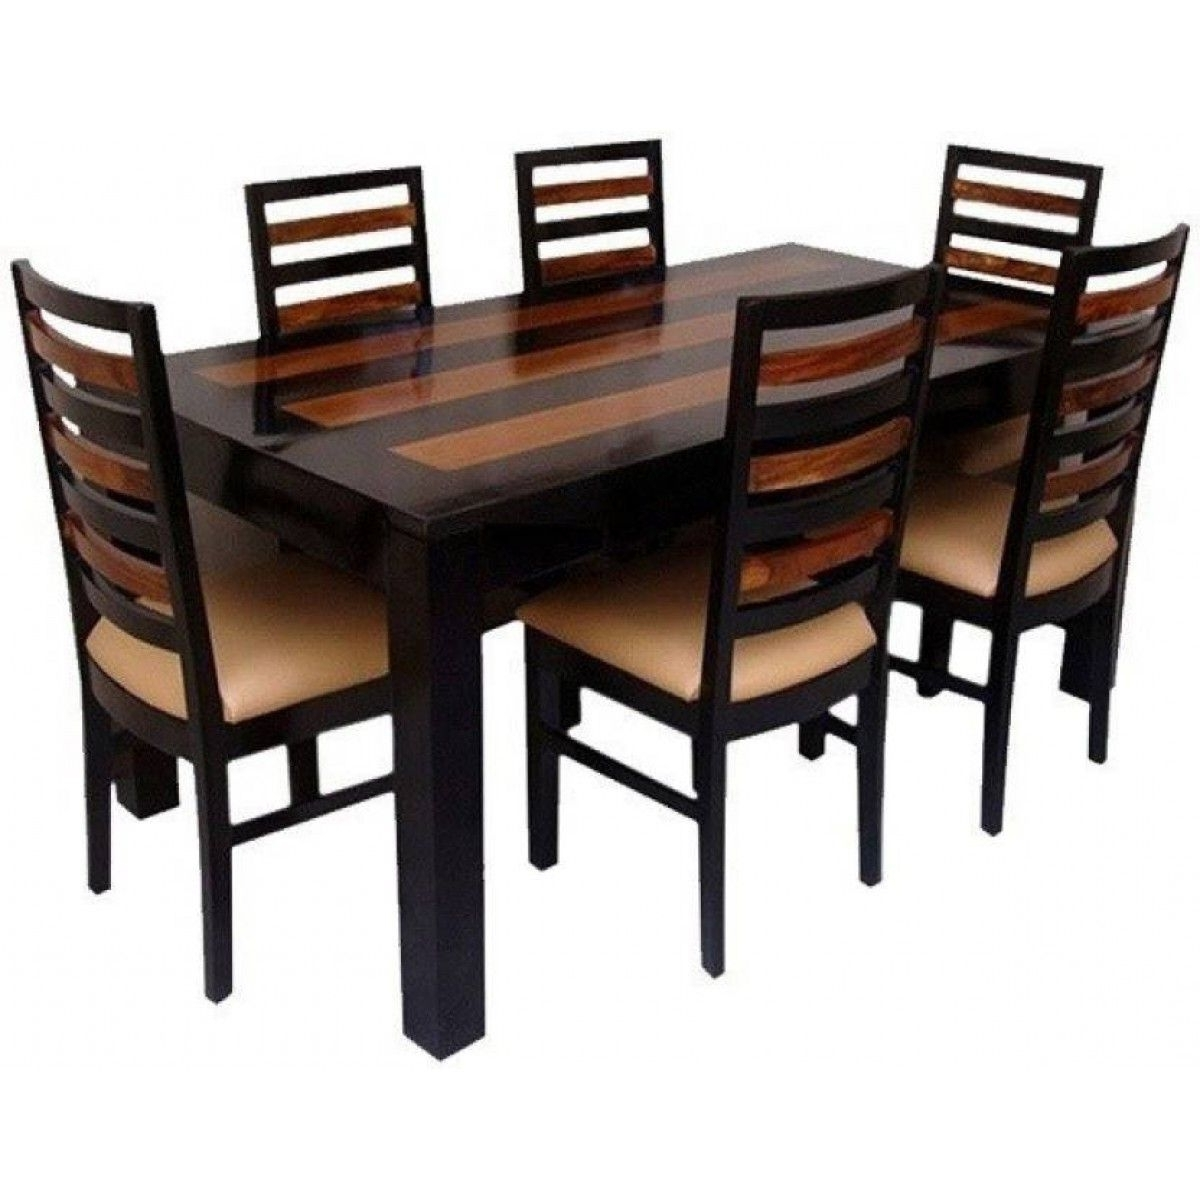 Indian Dining Tables And Chairs In Most Current Wooden Designed Dining Table Set (View 17 of 25)